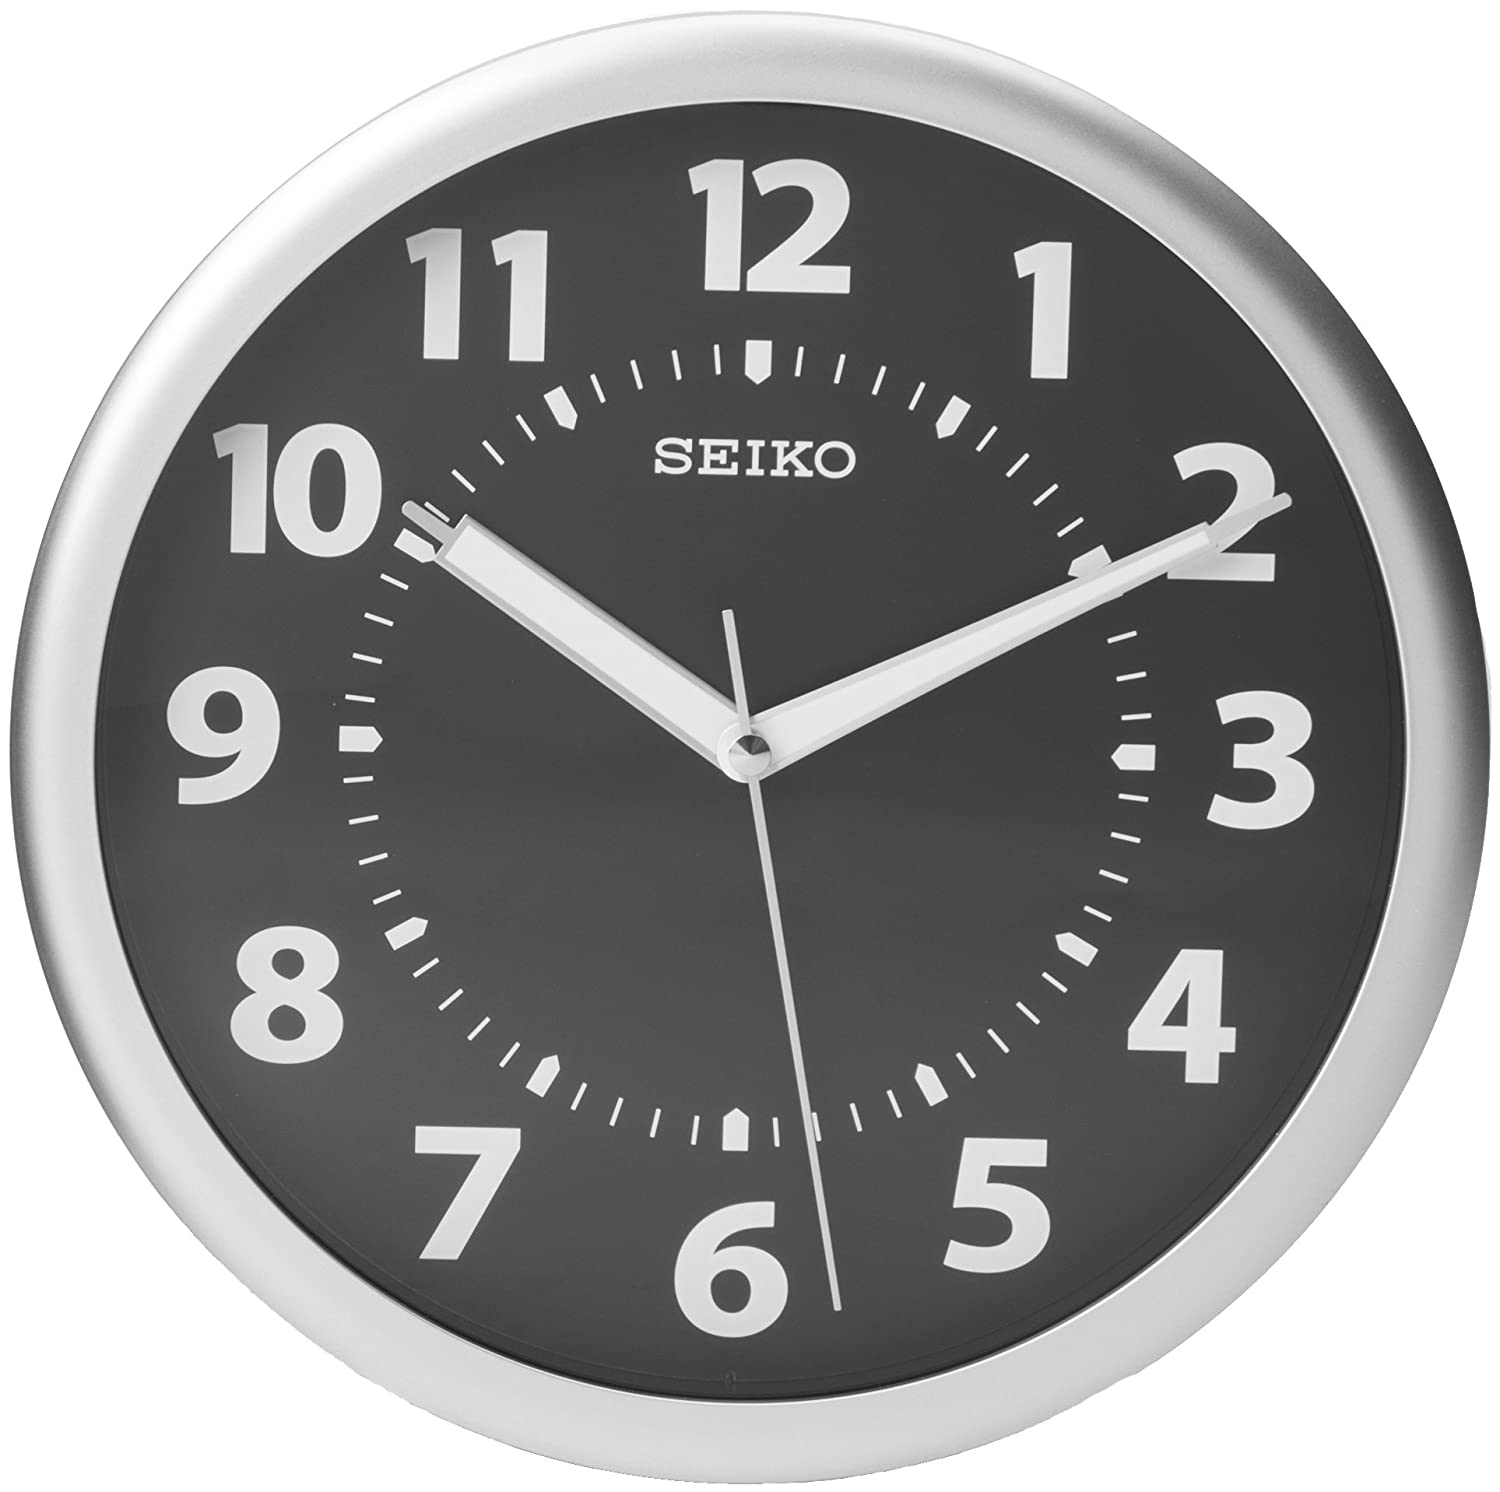 Atomic Clocks Amazon Silver Seiko Quartz Wall Clock Glow In Dark Luminous